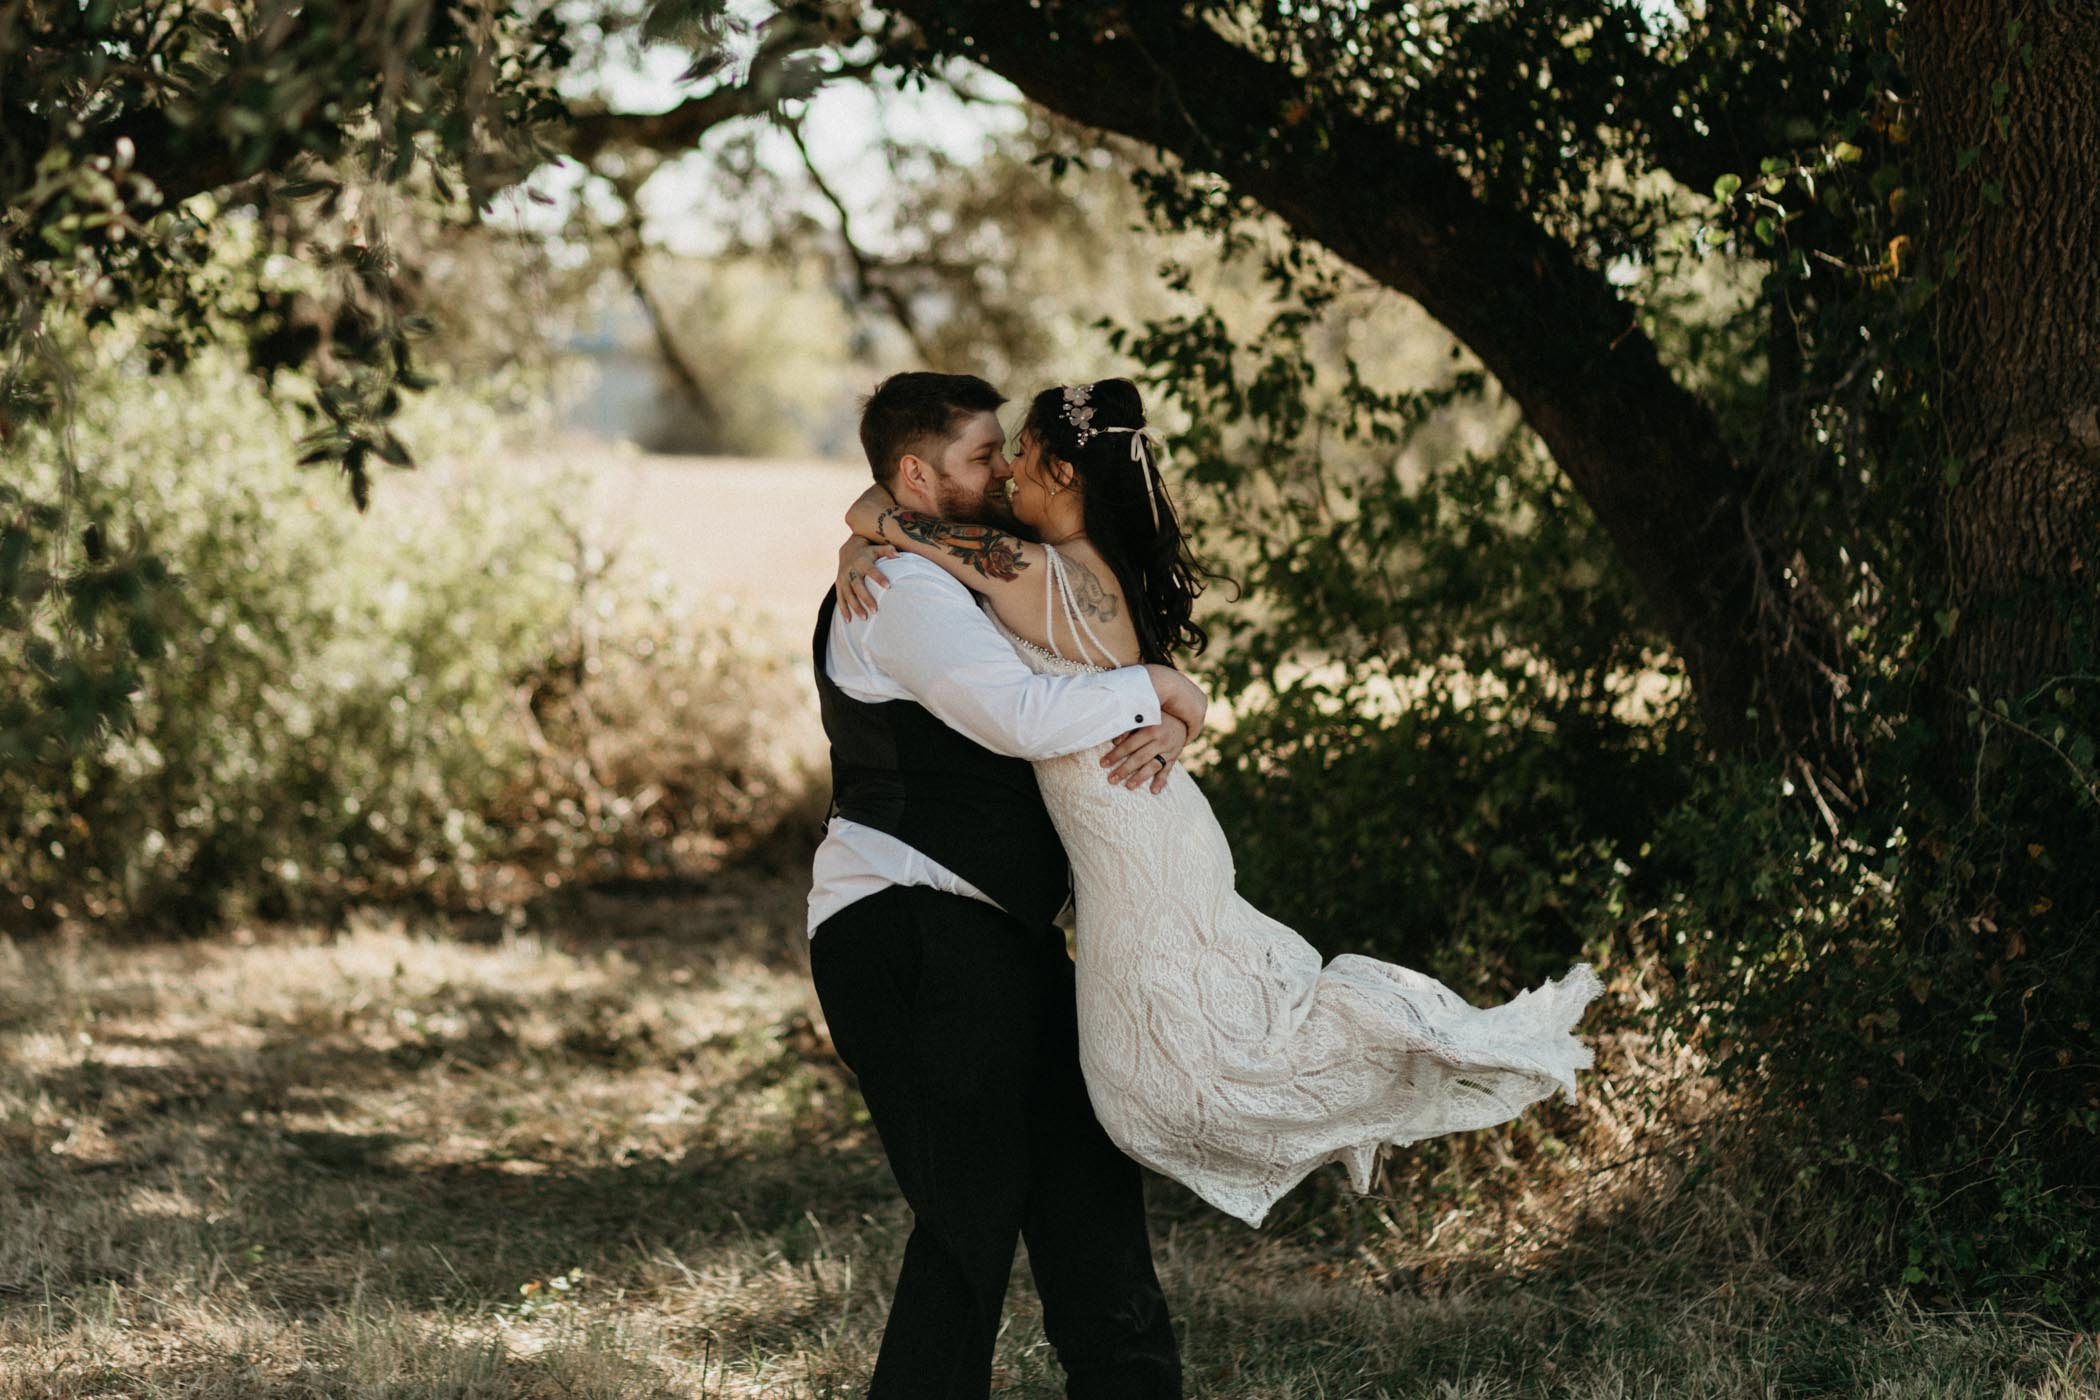 groom spinning bride around under a tree after wedding ceremony